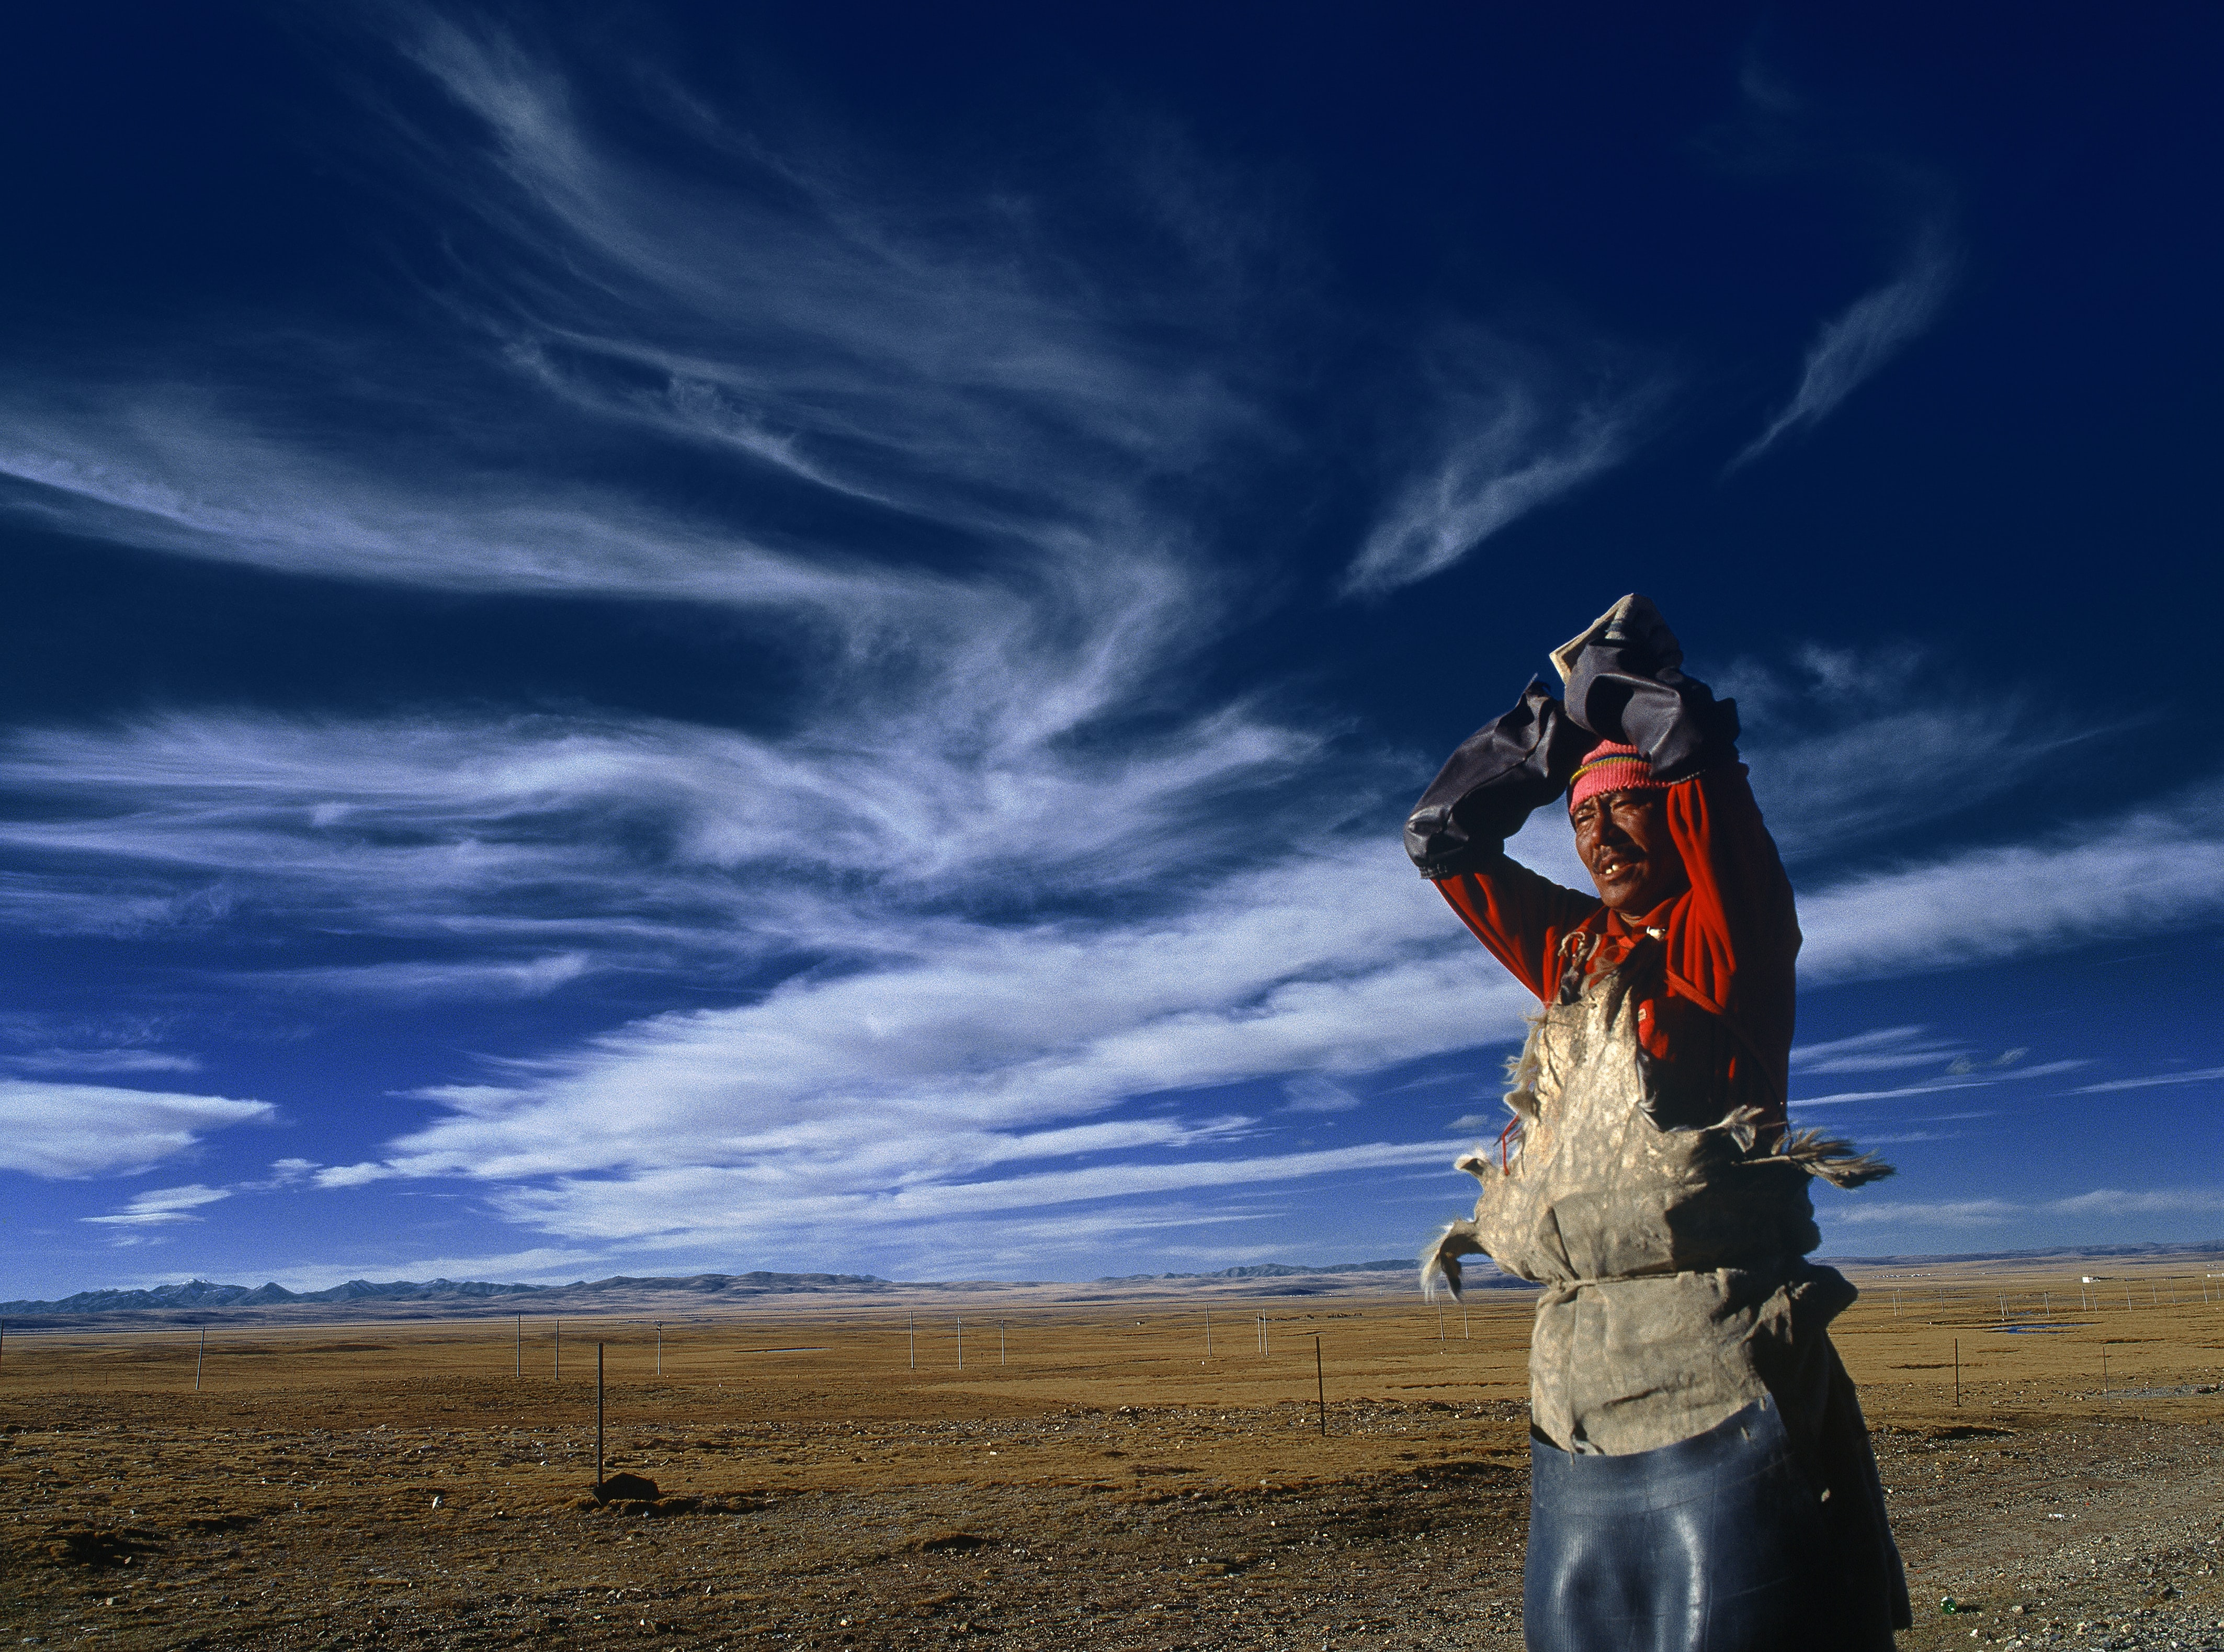 A man wearing a work apron stands in a field with a bright blue sky